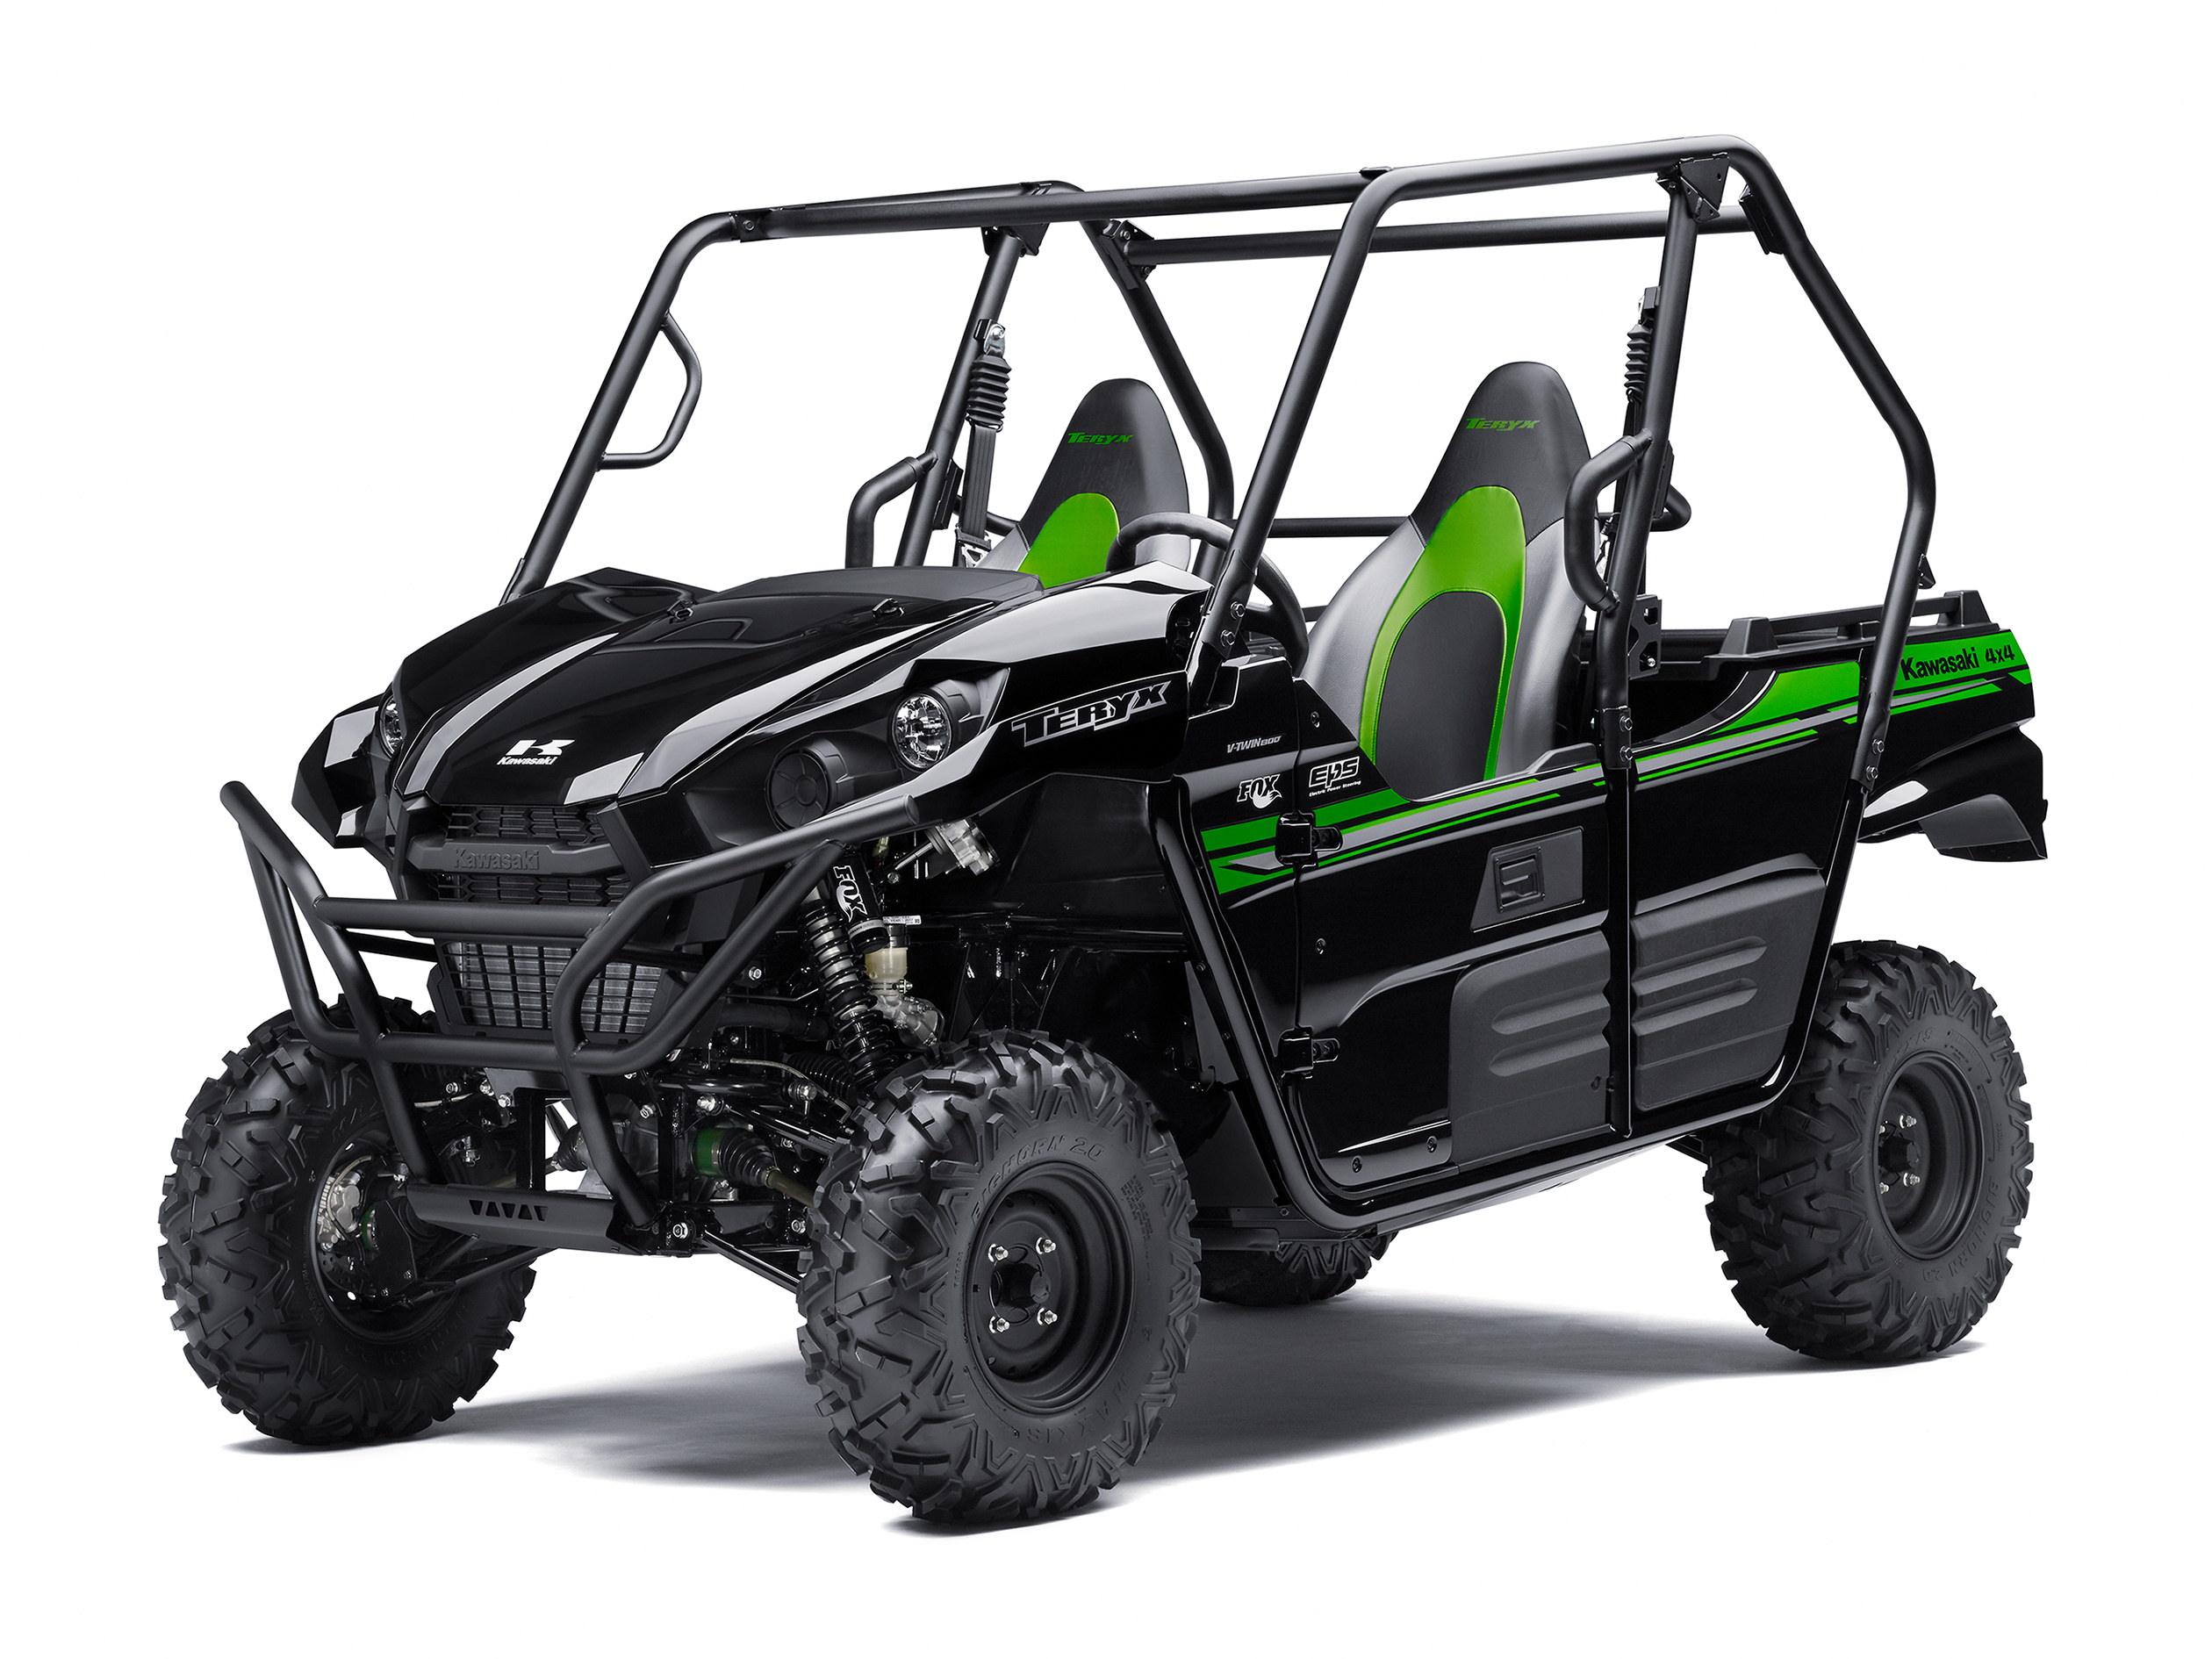 Kawasaki Recalls Utility Vehicles Recreational OffHighway